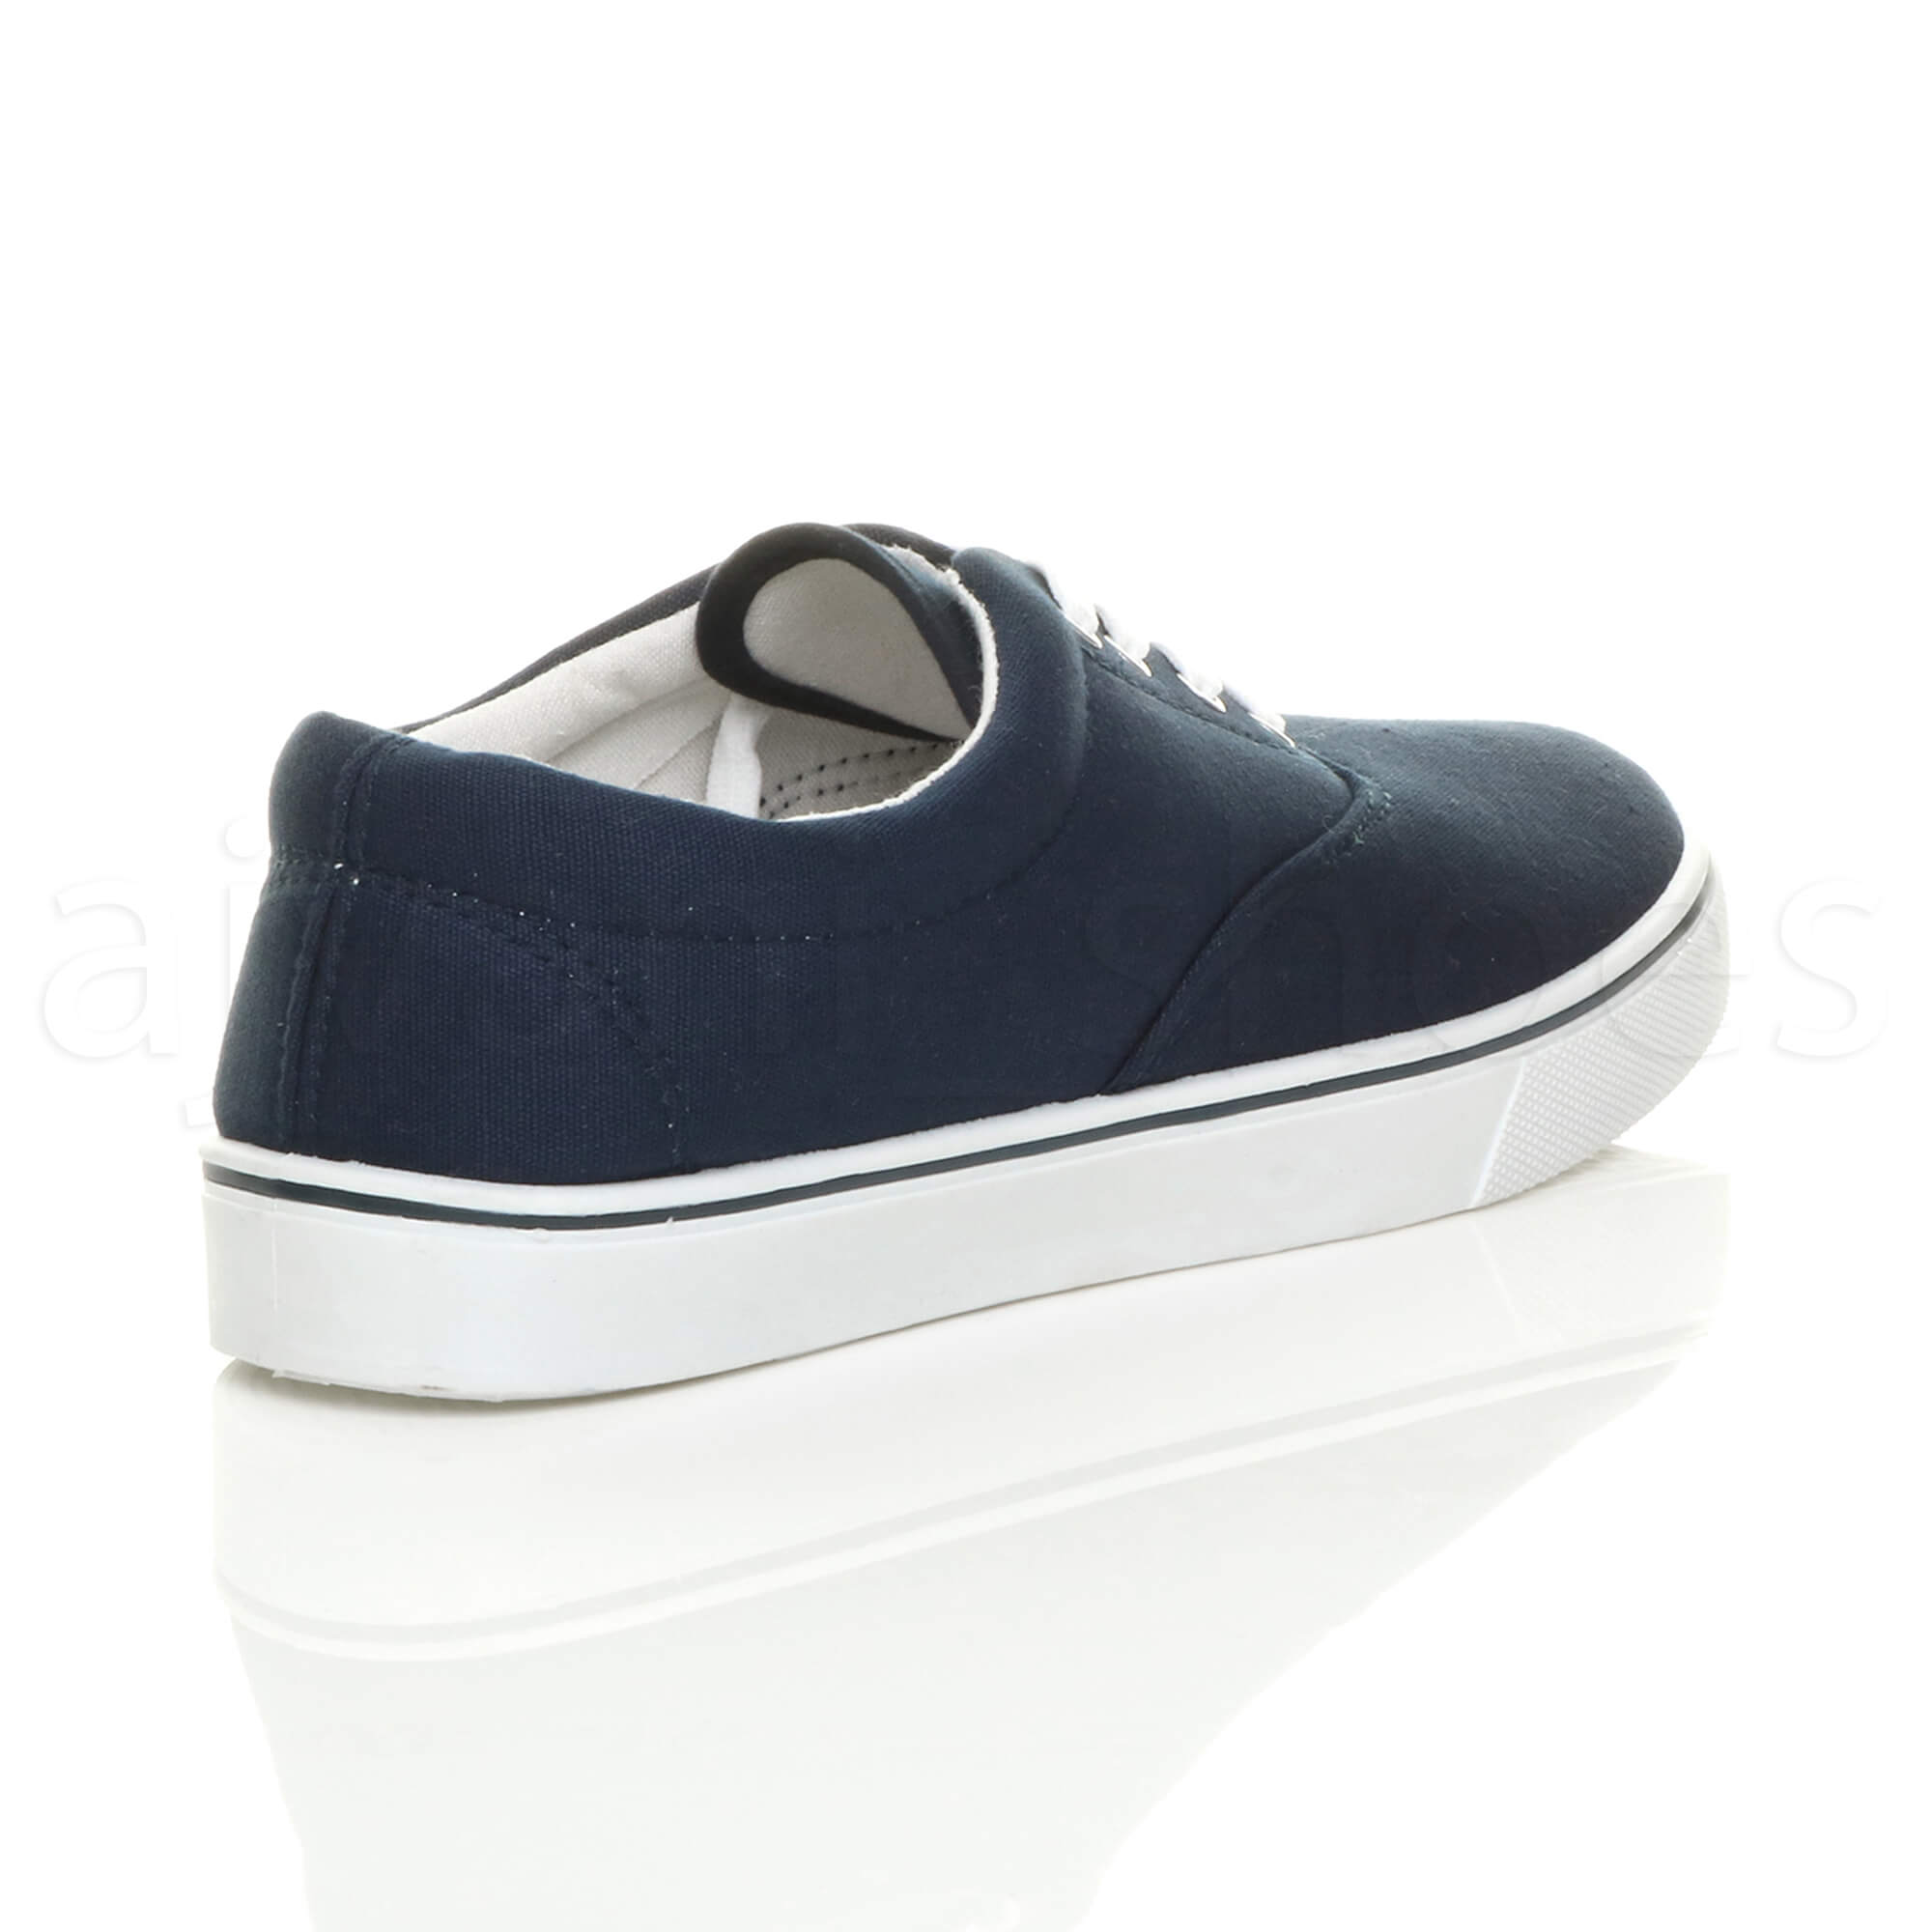 MENS-CANVAS-CASUAL-TRAINERS-PLIMSOLES-PLIMSOLLS-SHOES-LACE-UP-PUMPS-SIZE thumbnail 10